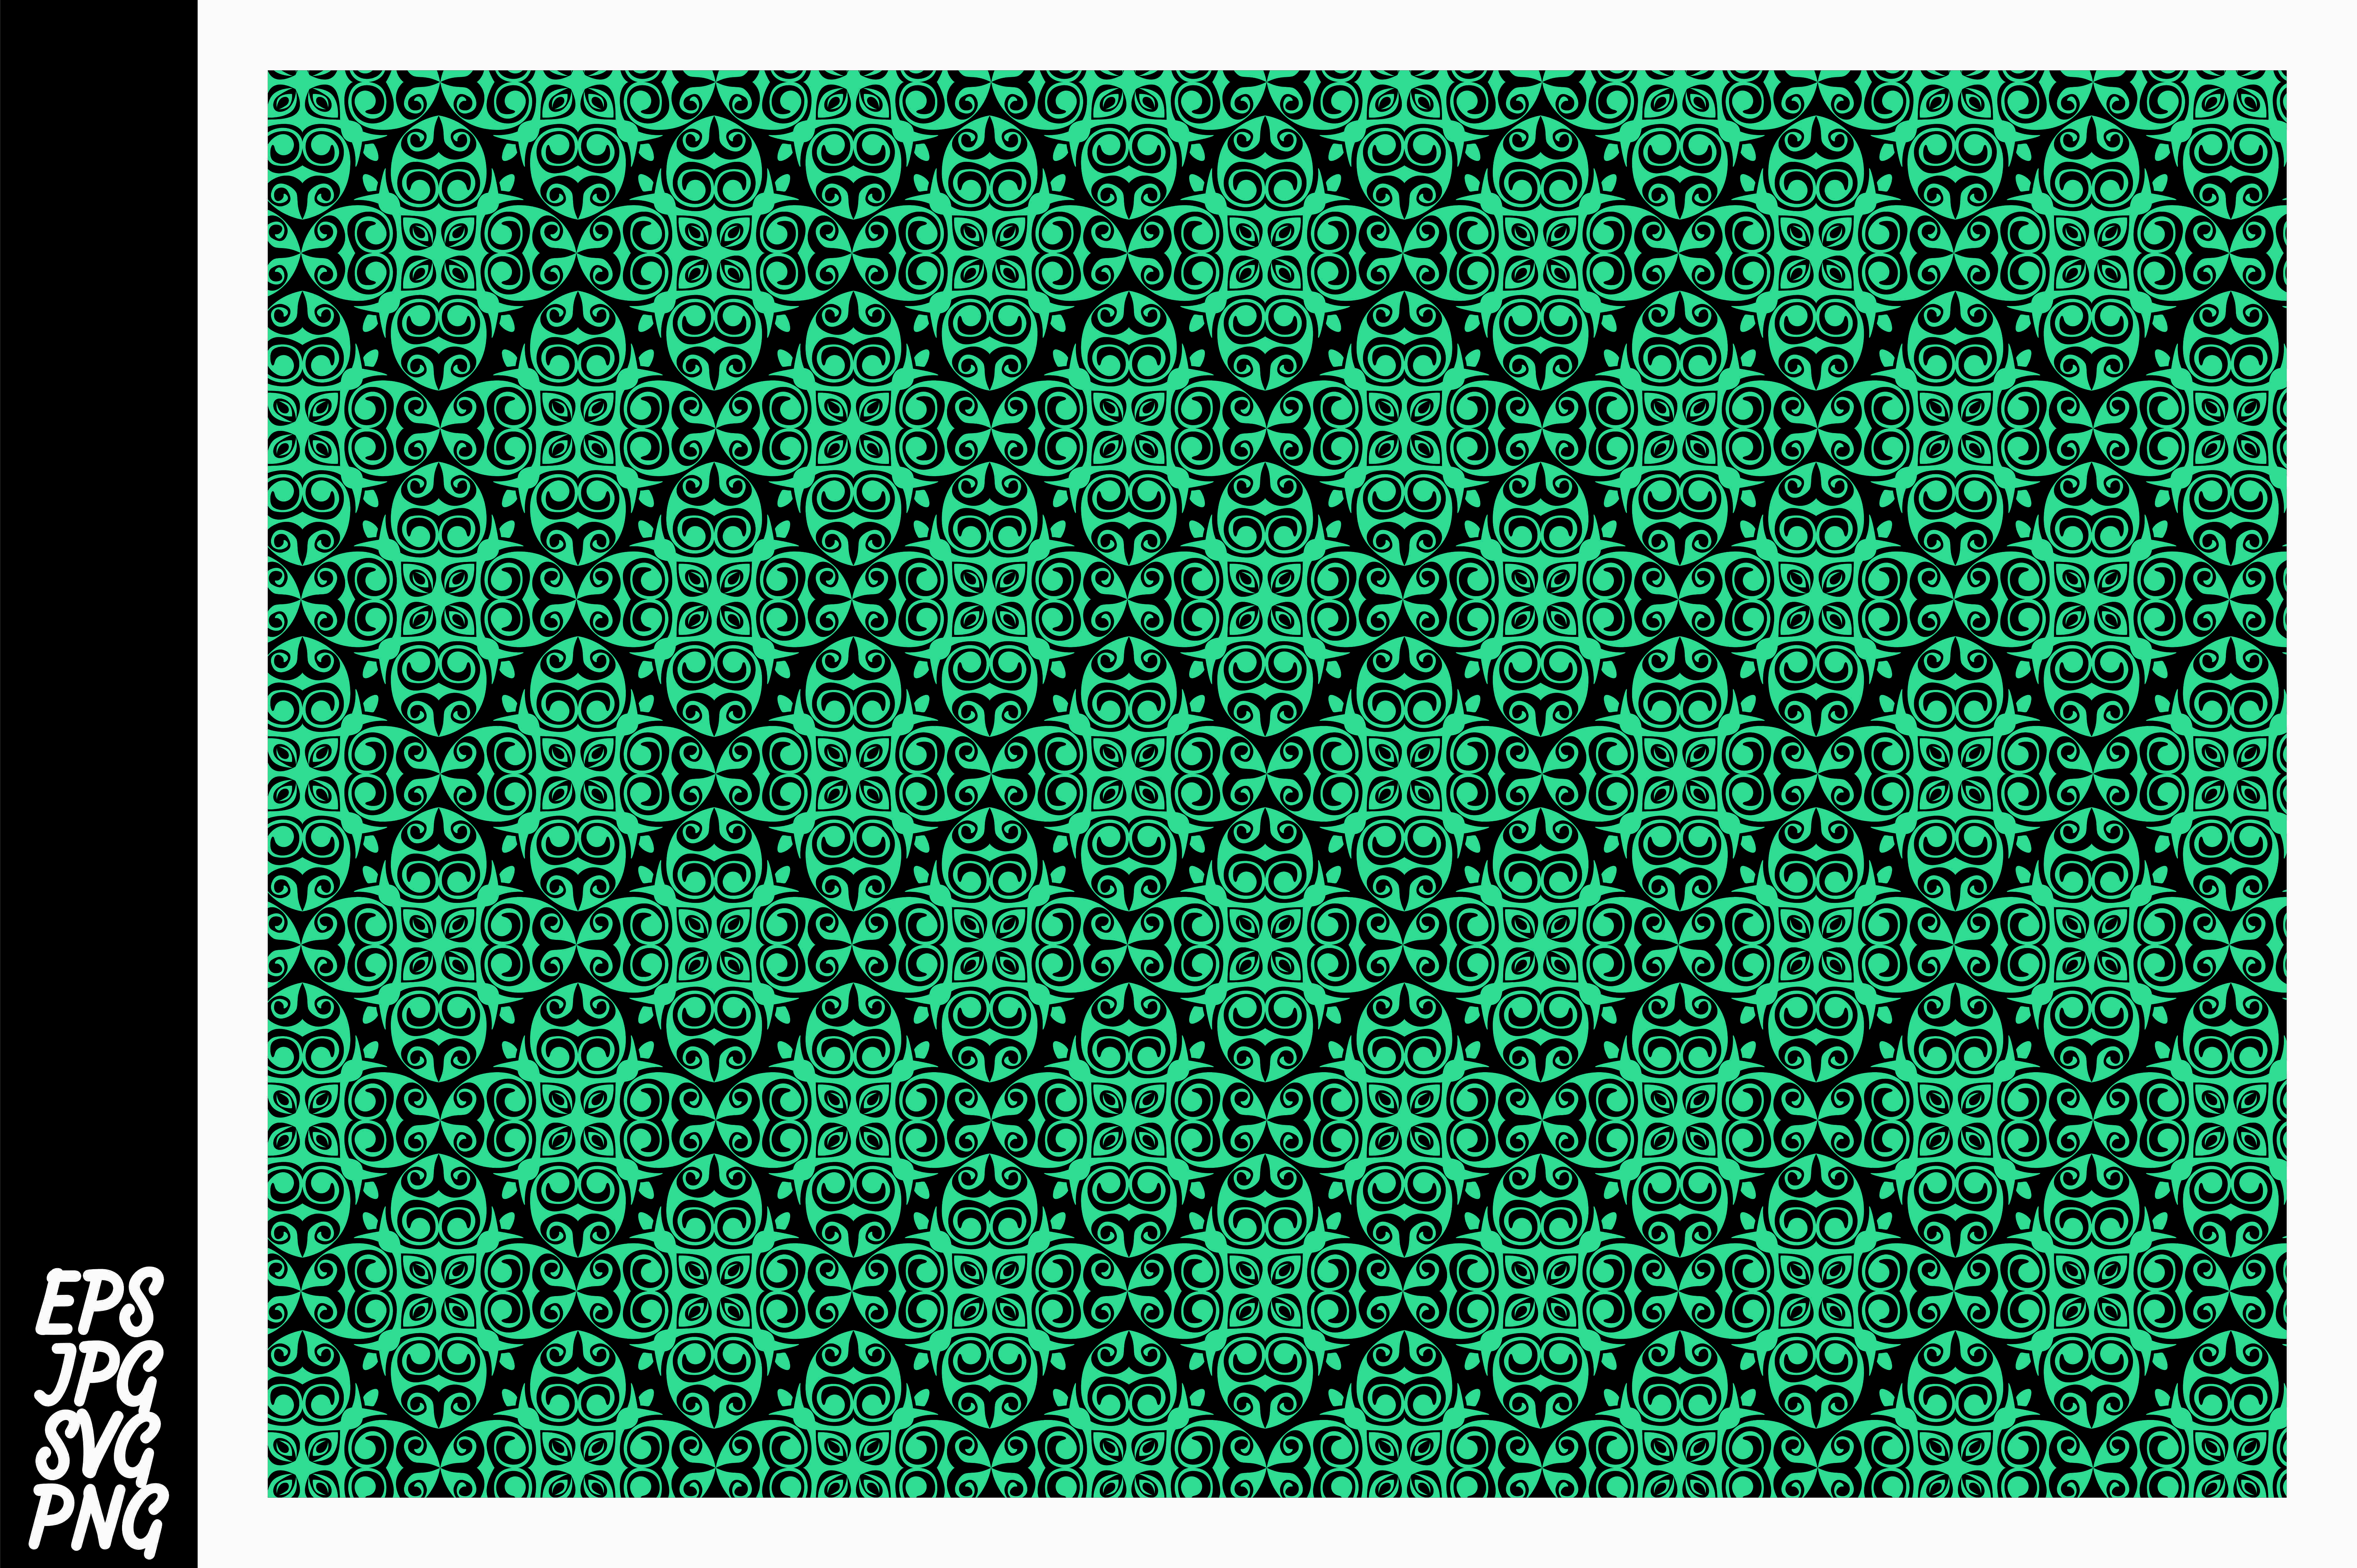 Download Free Blue Ornament Pattern Svg Graphic By Arief Sapta Adjie Ii for Cricut Explore, Silhouette and other cutting machines.